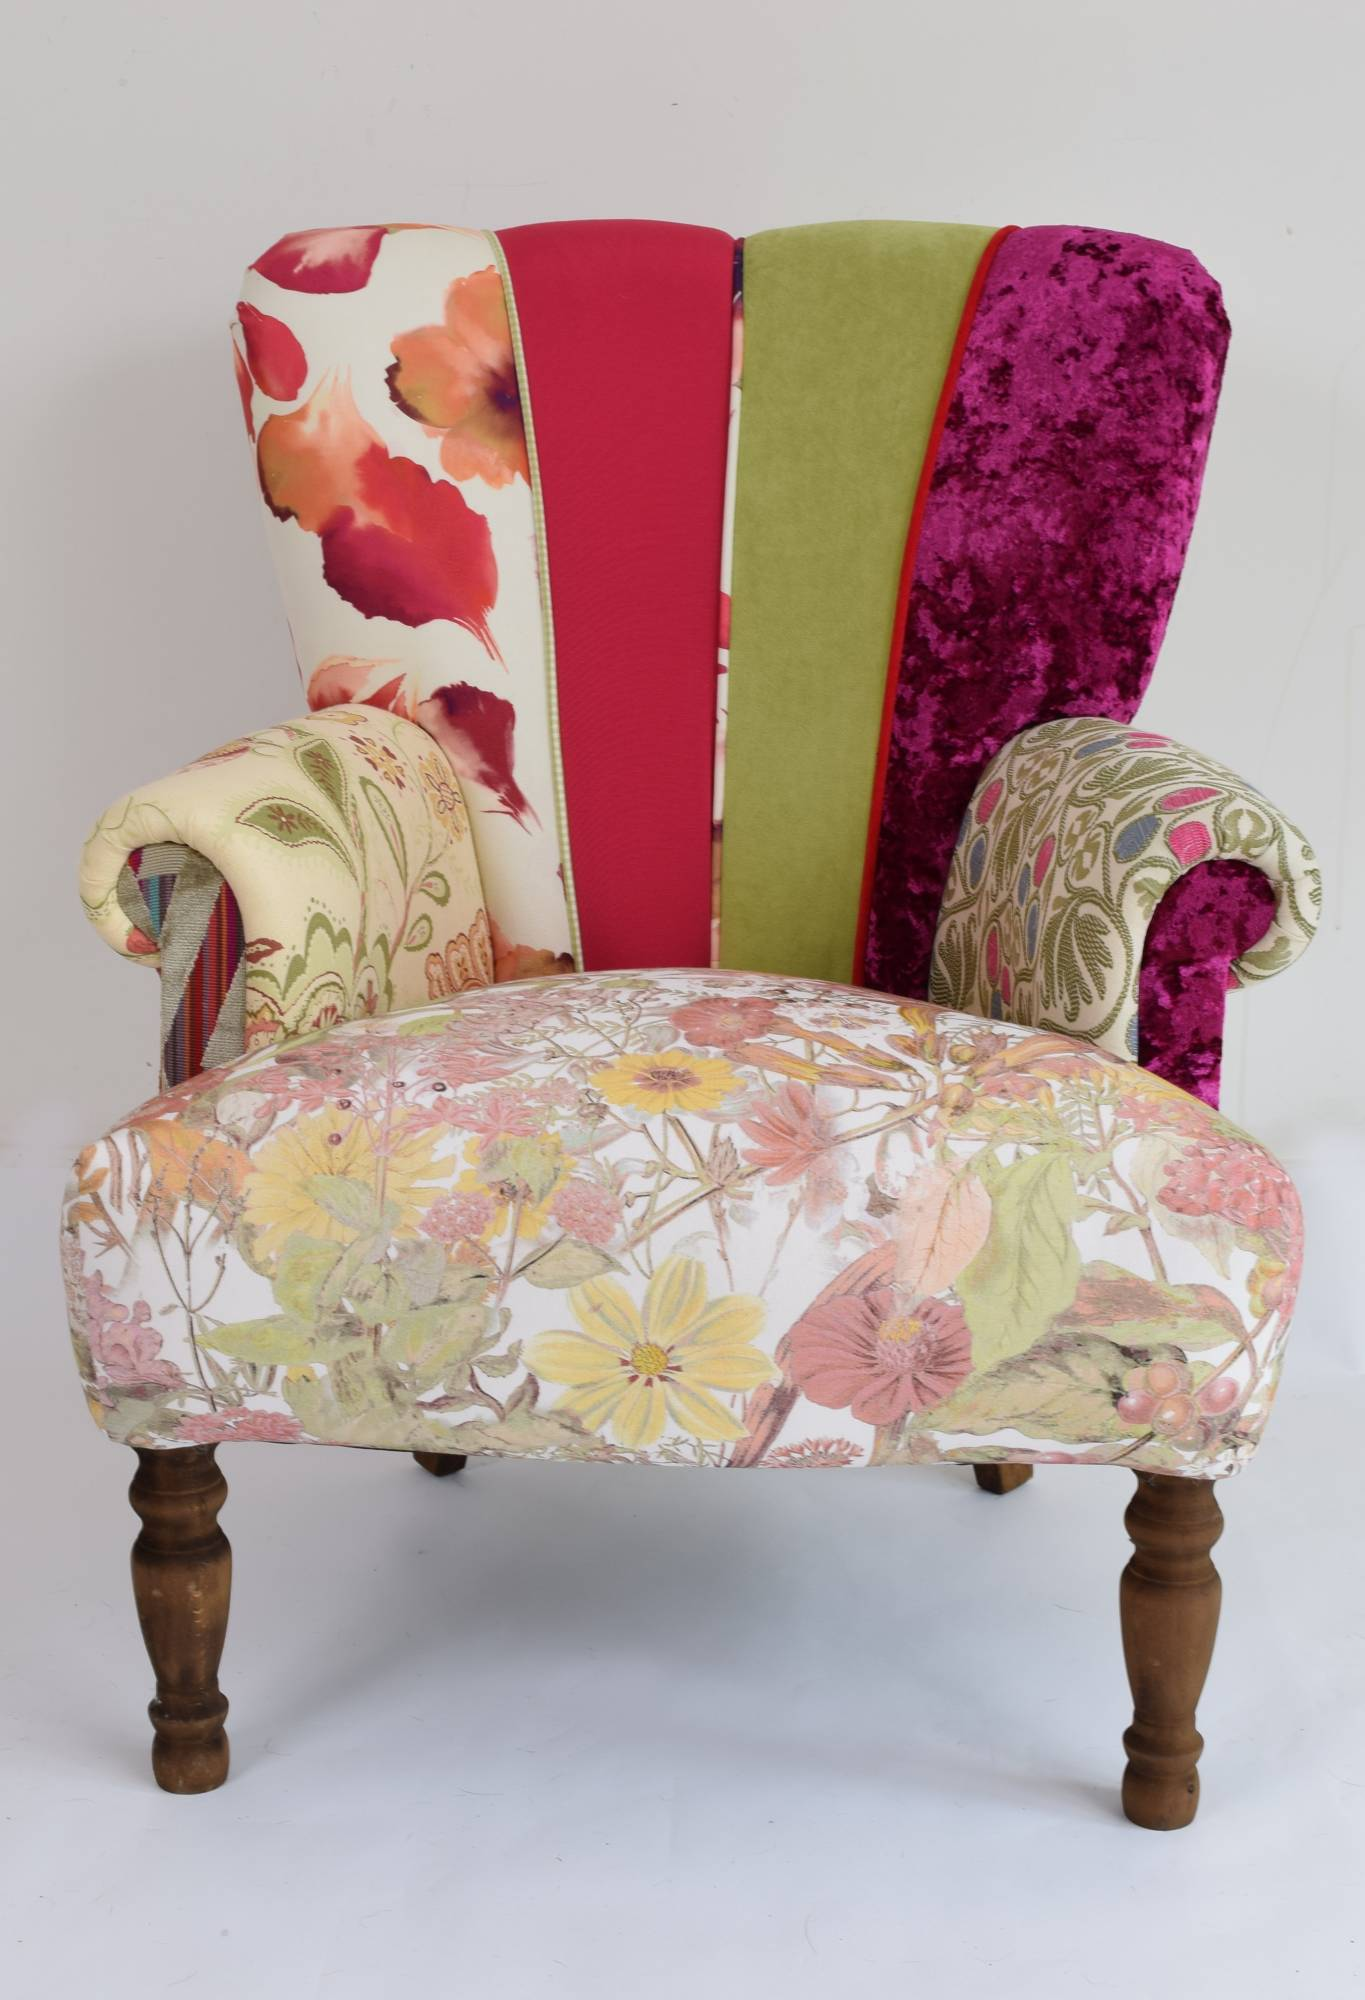 Quirky harlequin chair 134 bedroom furniture for Quirky furniture